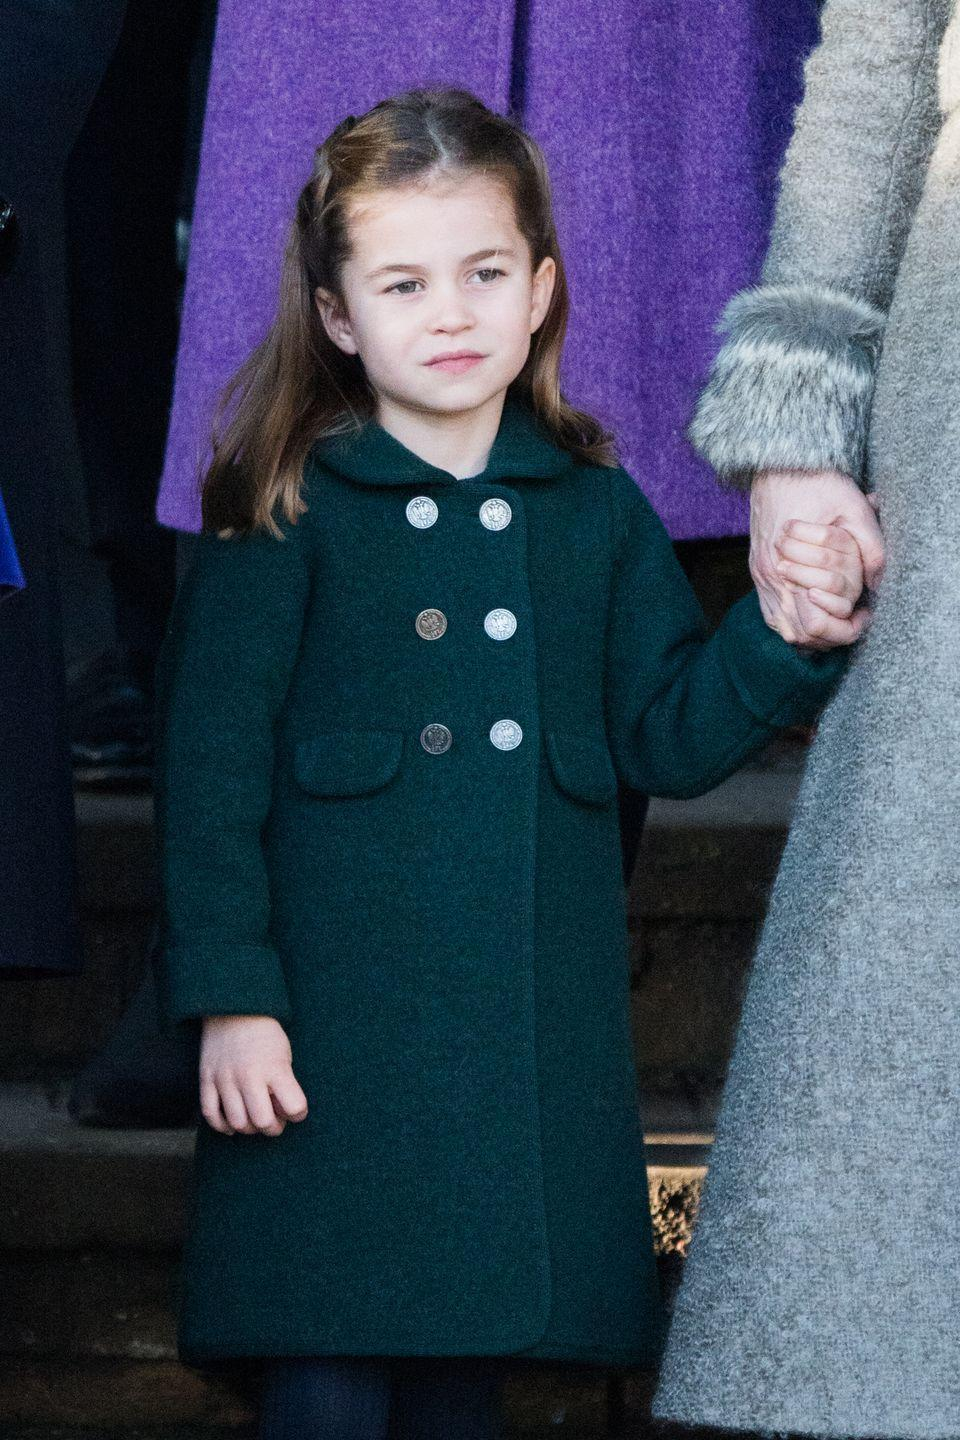 """<p>Princess Charlotte of Cambridge is the first and youngest female in line for the throne—and she retains the fourth spot over her younger brother Louis thanks to 2013's <a href=""""https://www.royal.uk/succession"""" rel=""""nofollow noopener"""" target=""""_blank"""" data-ylk=""""slk:Succession to the Crown Act"""" class=""""link rapid-noclick-resp"""">Succession to the Crown Act</a>. But still, it's highly unlikely anyone who's alive today will see another <a href=""""https://www.cosmopolitan.com/entertainment/celebs/a15072033/princess-charlotte-already-speaks-spanish-to-her-nanny/"""" rel=""""nofollow noopener"""" target=""""_blank"""" data-ylk=""""slk:queen"""" class=""""link rapid-noclick-resp"""">queen</a> on the throne. As the """"spare to the heir,"""" Charlotte will enjoy a life similar to Prince William's younger brother, Prince Harry, who has (er, <a href=""""https://www.cosmopolitan.com/entertainment/celebs/a30496404/meghan-markle-prince-harry-quitting-royal-family-timeline/?utm_campaign=cosmo-2020-tradetracker&utm_medium=affiliate&utm_source=tradetracker&utm_term=137180"""" rel=""""nofollow noopener"""" target=""""_blank"""" data-ylk=""""slk:had"""" class=""""link rapid-noclick-resp"""">had</a>) all the perks of royalty but isn't totally constrained by having to live up the role of a future monarch. She has the best of both worlds! In conclusion, <a href=""""https://www.youtube.com/watch?v=uhbq0KIFRds"""" rel=""""nofollow noopener"""" target=""""_blank"""" data-ylk=""""slk:watch her play with balloons"""" class=""""link rapid-noclick-resp"""">watch her play with balloons</a>.</p>"""